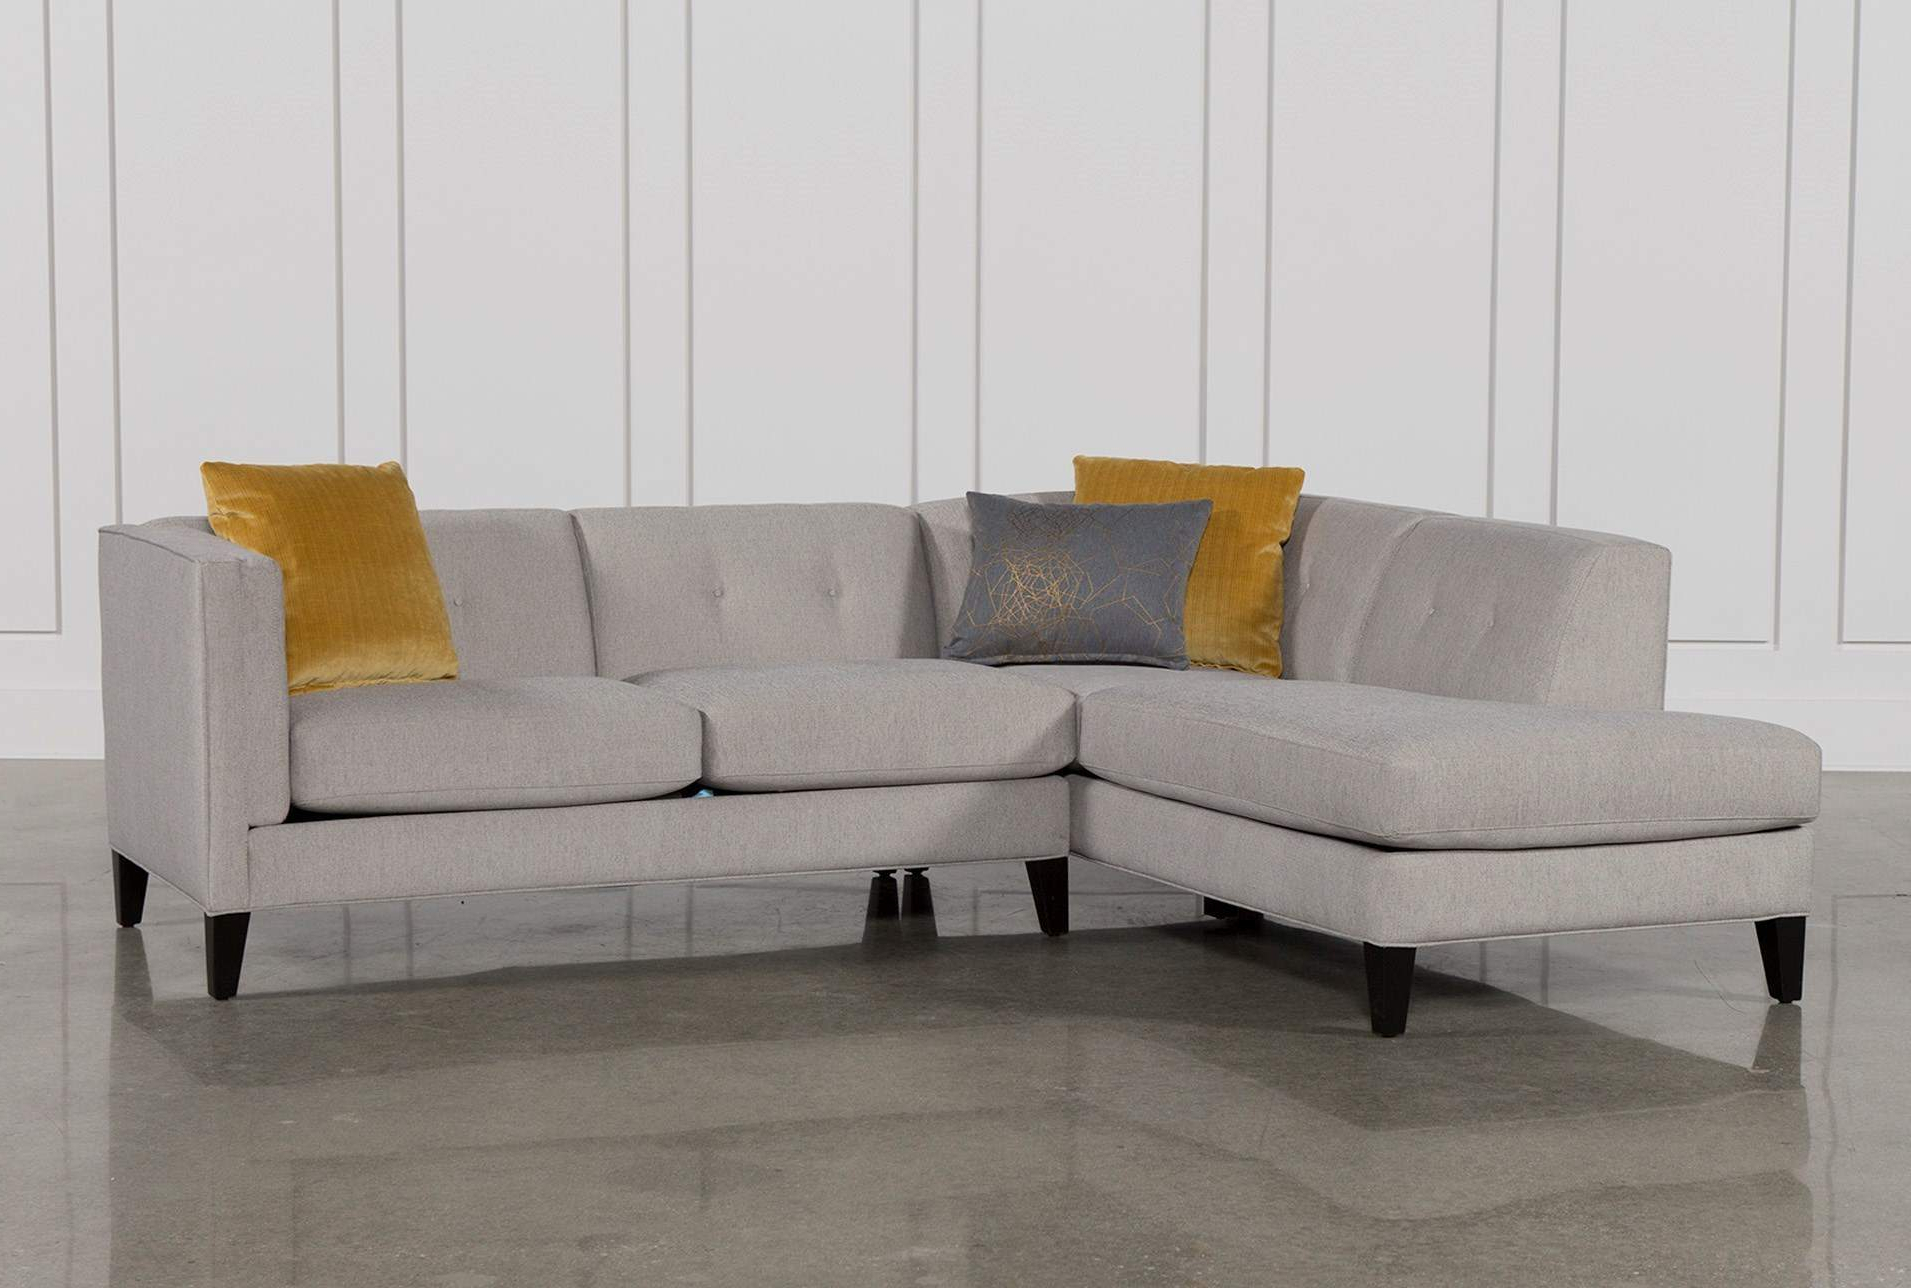 Shapely Small Sectional Sofas Living Spaces Couch Locks Display Throughout Preferred Adeline 3 Piece Sectionals (View 20 of 20)